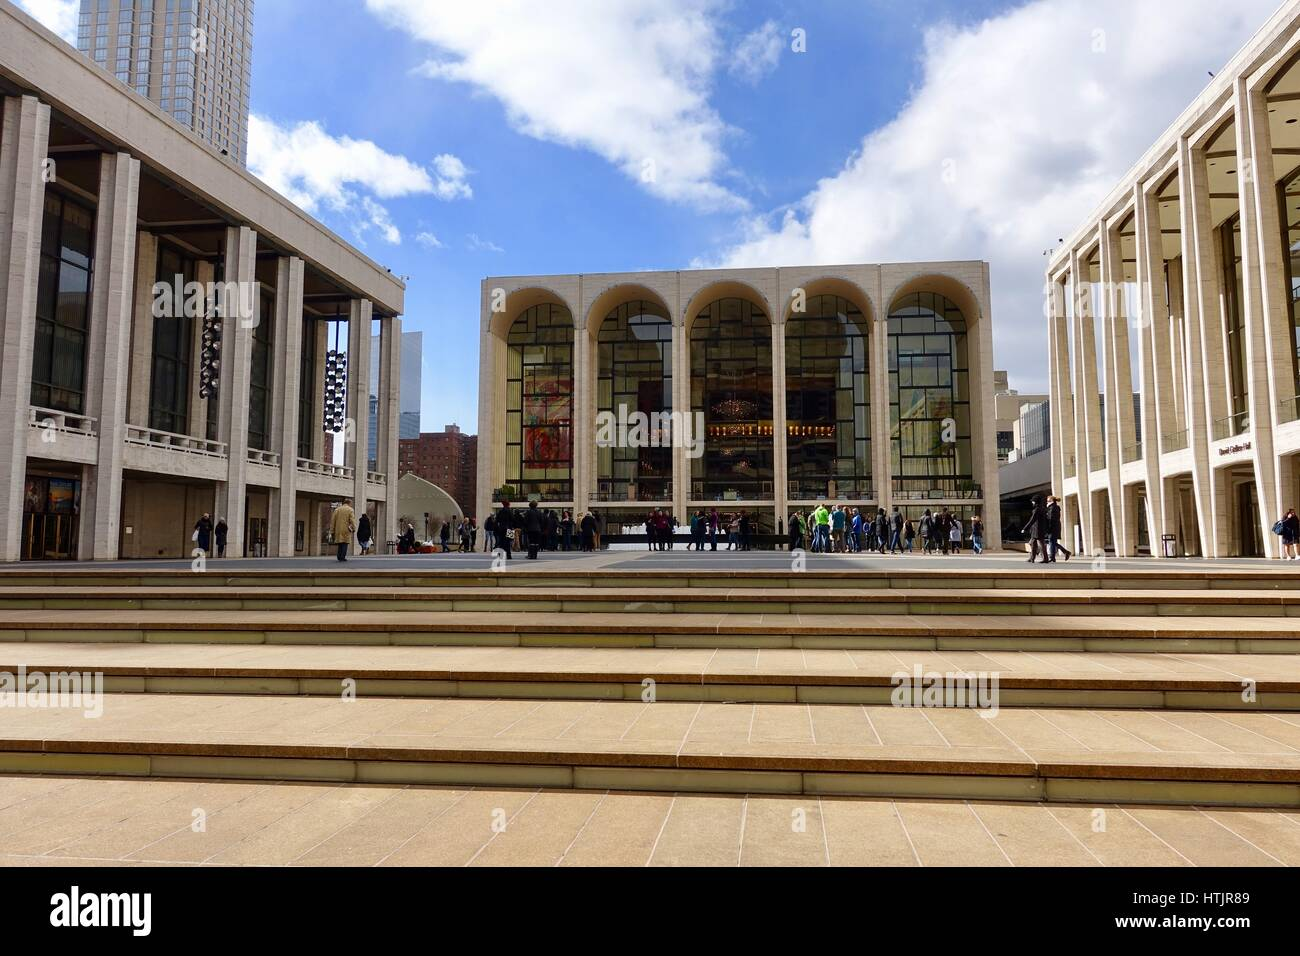 Daytime gathering of people in front of Lincoln Center, New York, New York, USA - Stock Image